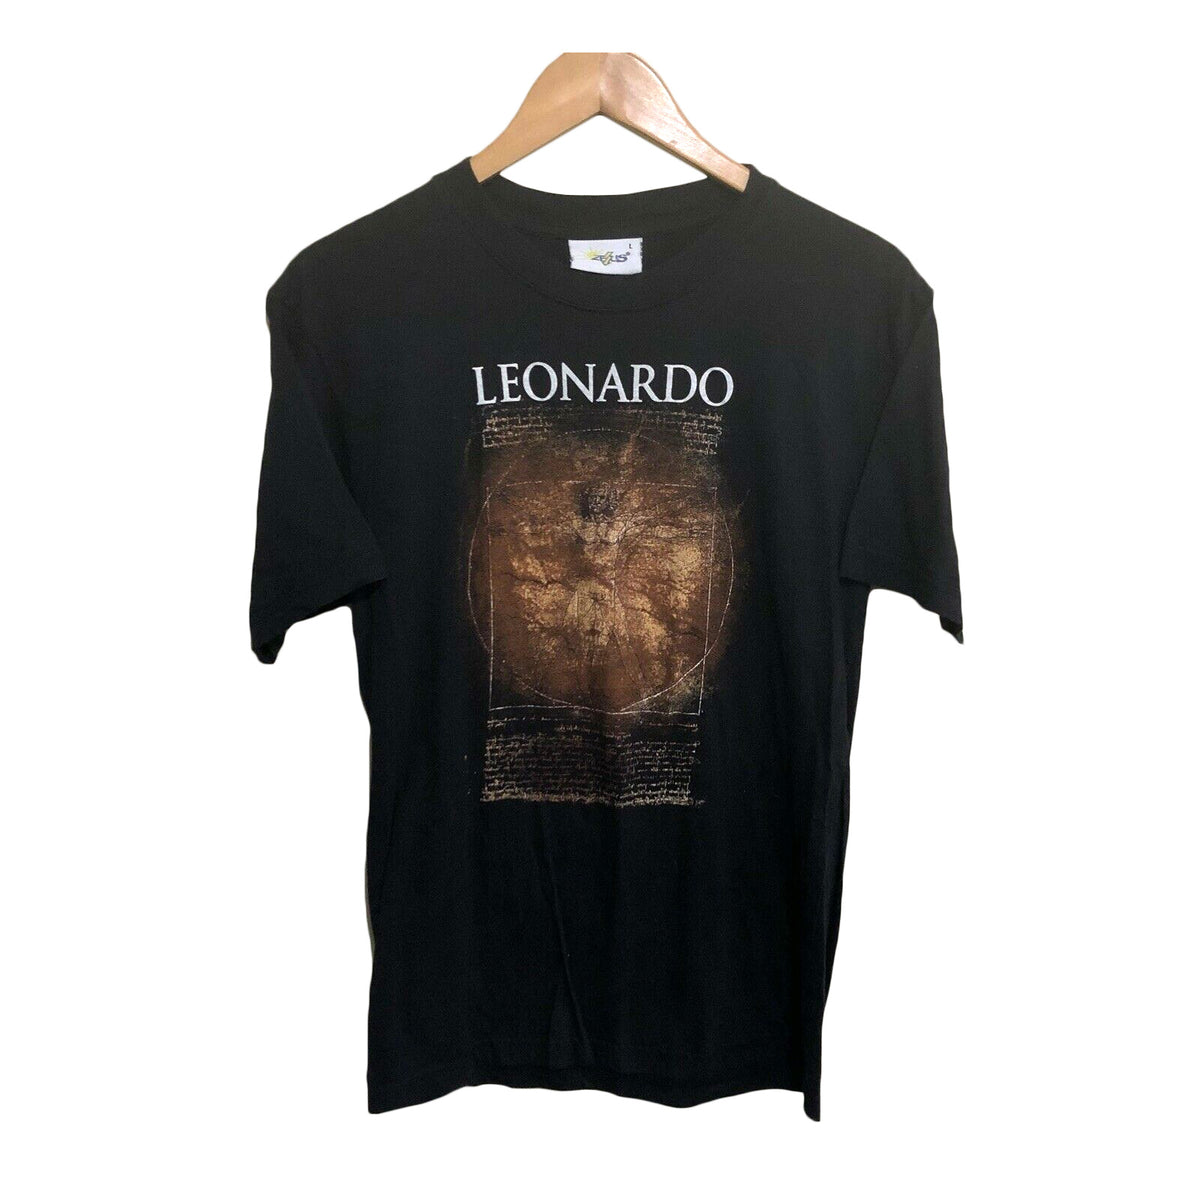 Leonardo Da Vinci Vitruvian Man Vintage T-Shirt Mens Large (Fits Medium)